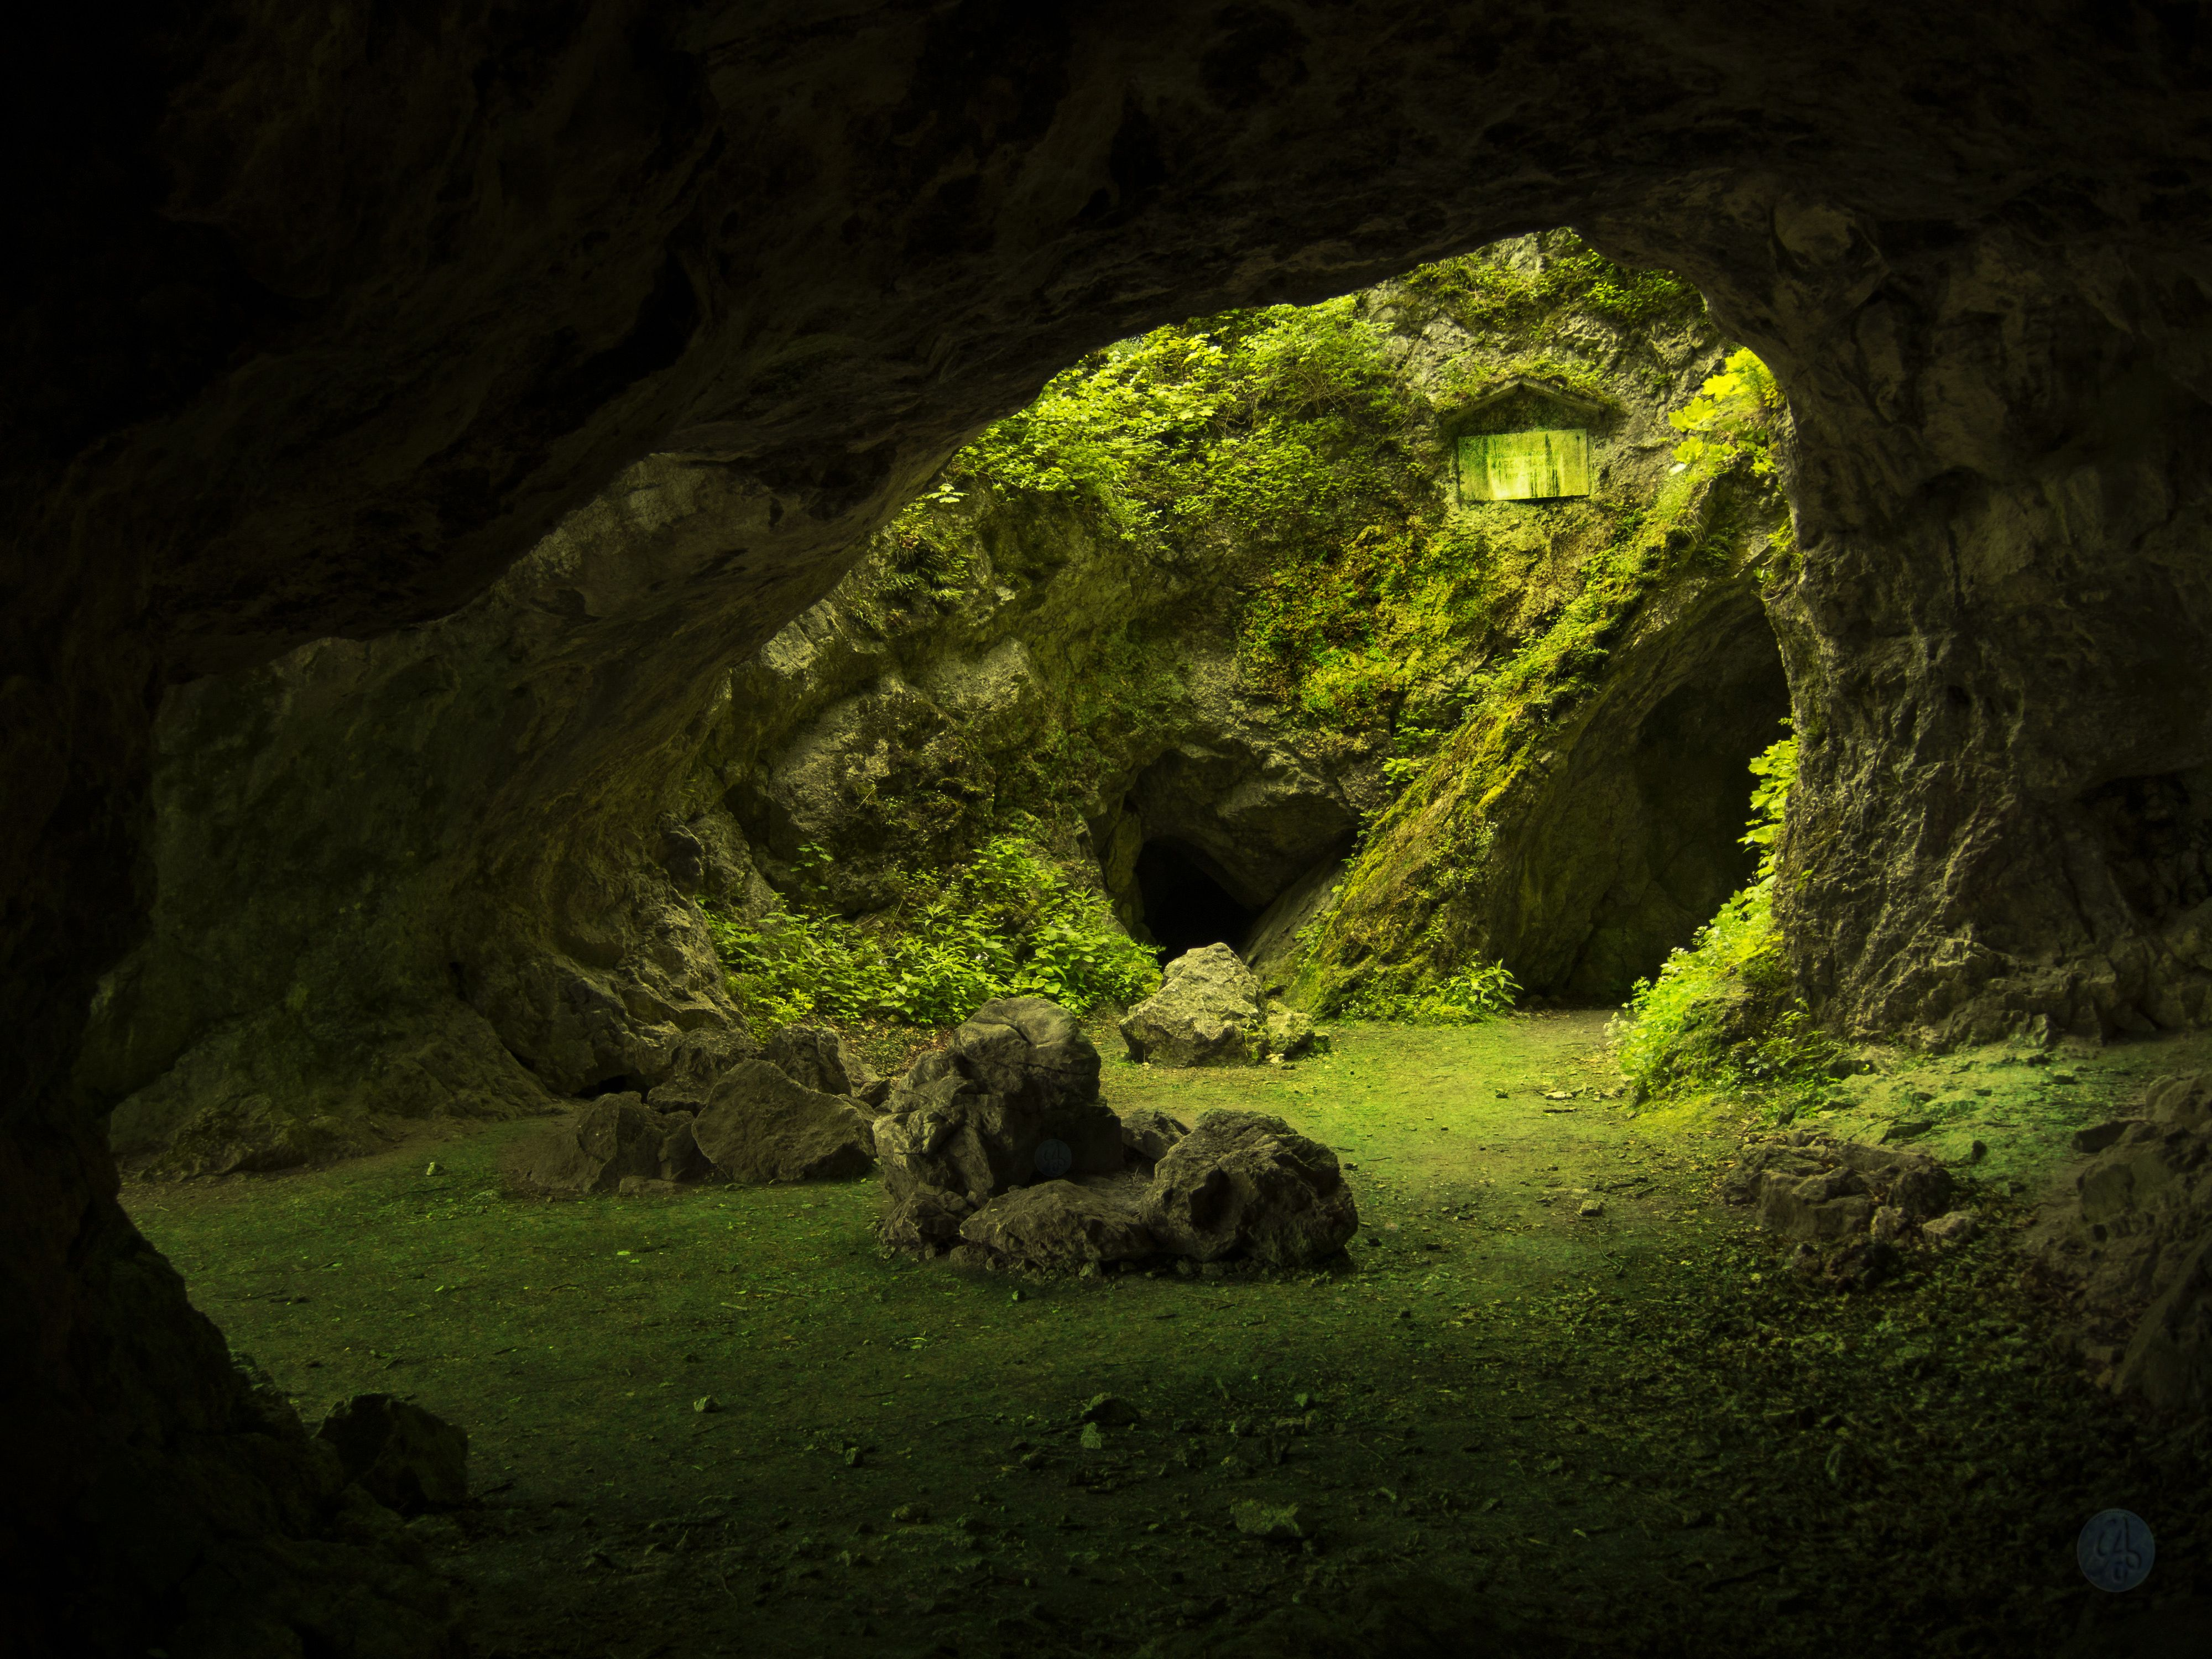 Http En Wikipedia Org Wiki List Of Caves In The United States Full Hd Pictures Widescreen Wallpaper Wallpaper Hd wallpaper cave rock formation nature